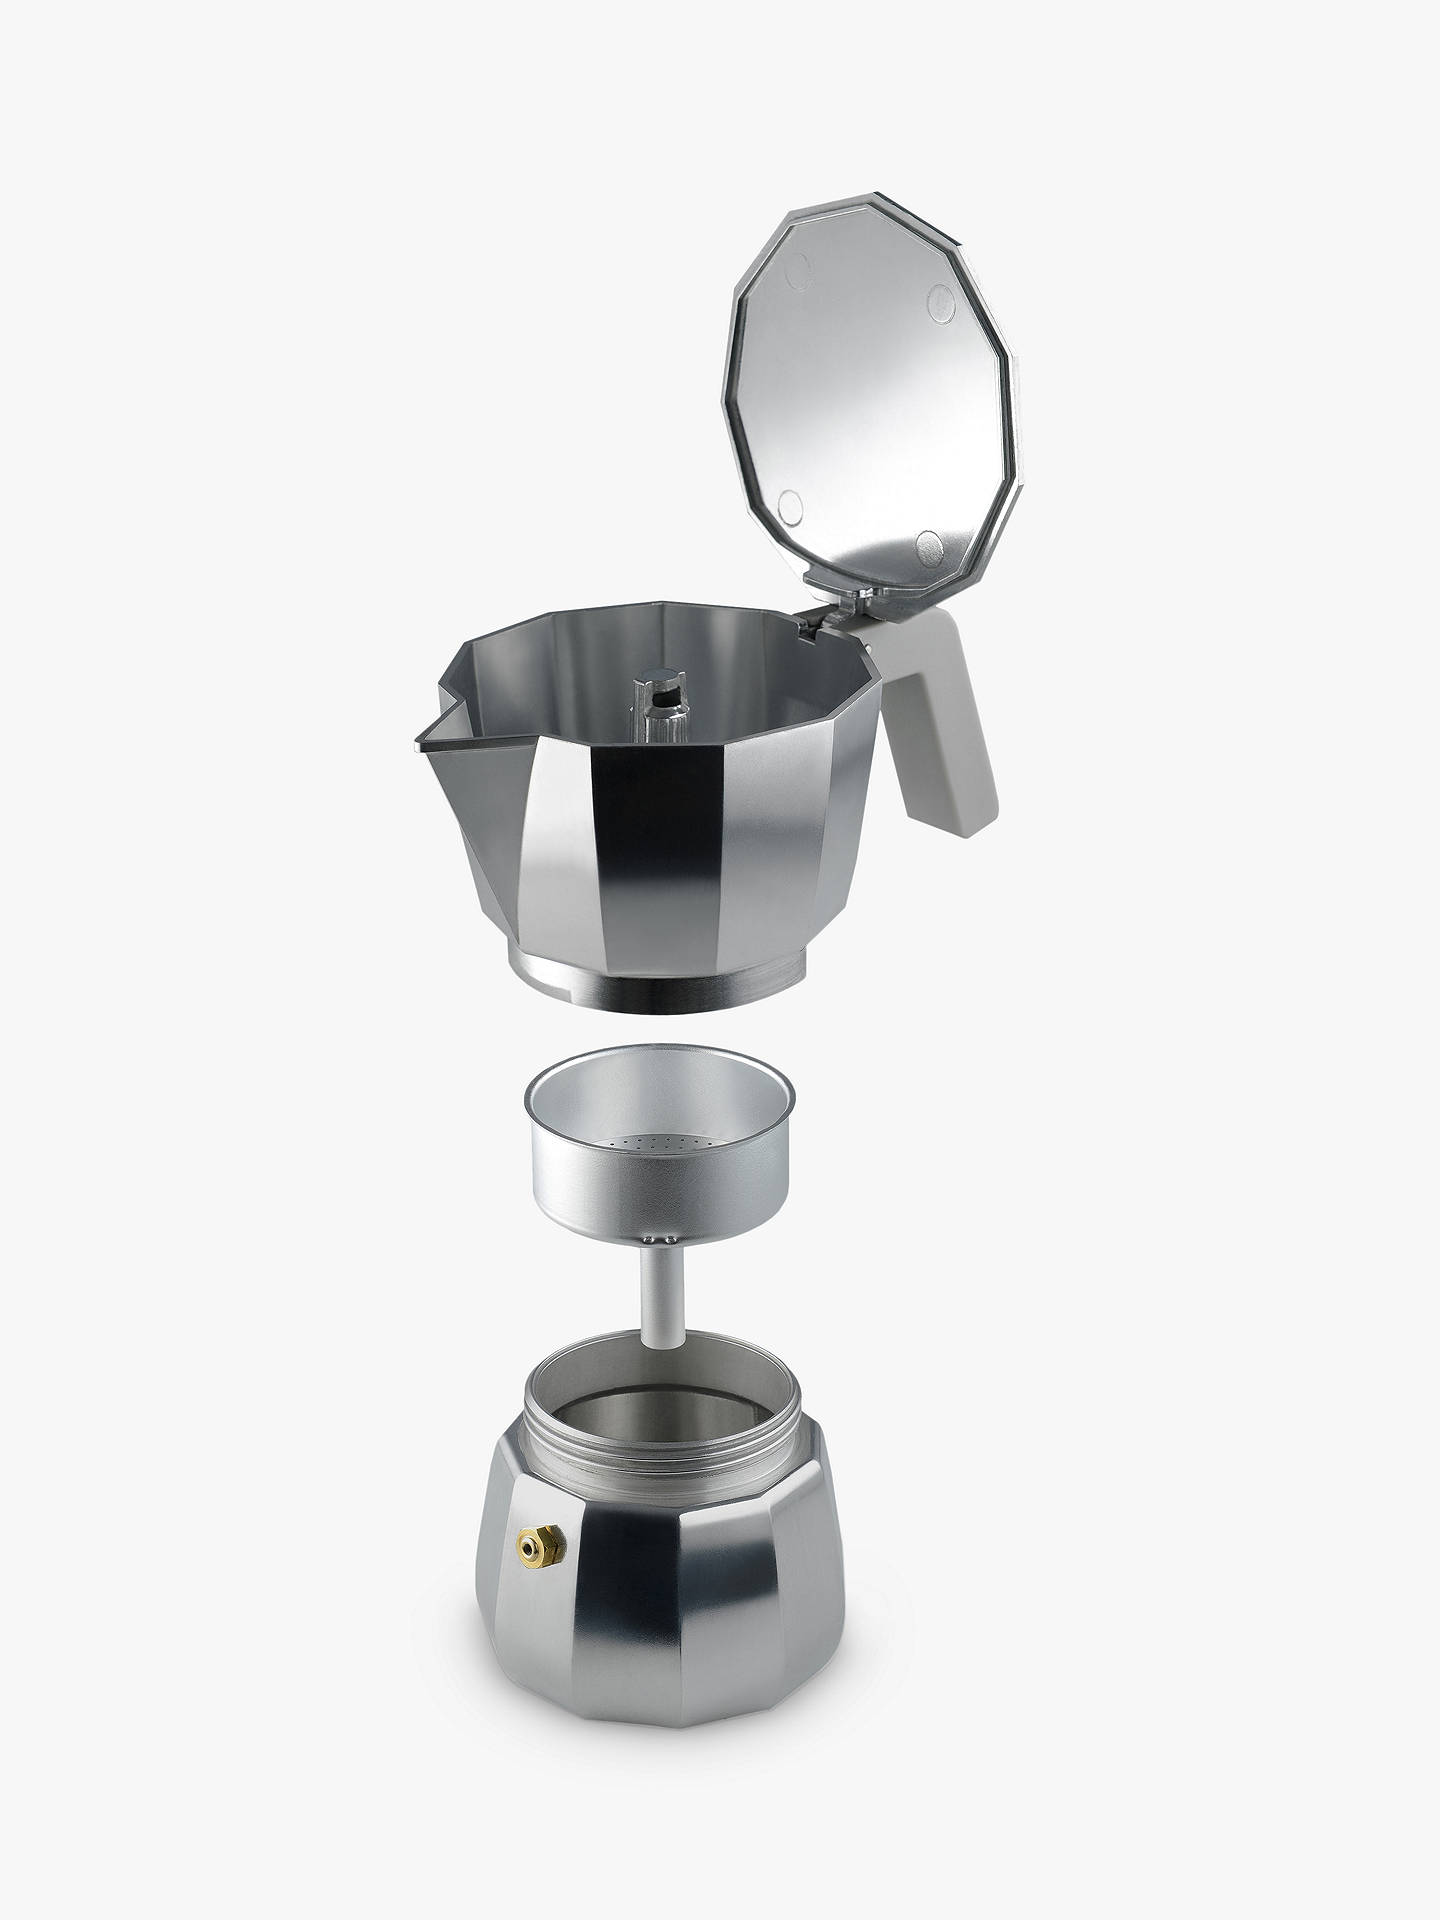 Buy Alessi Moka Espresso Coffee Pot, 3 Cup Online at johnlewis.com